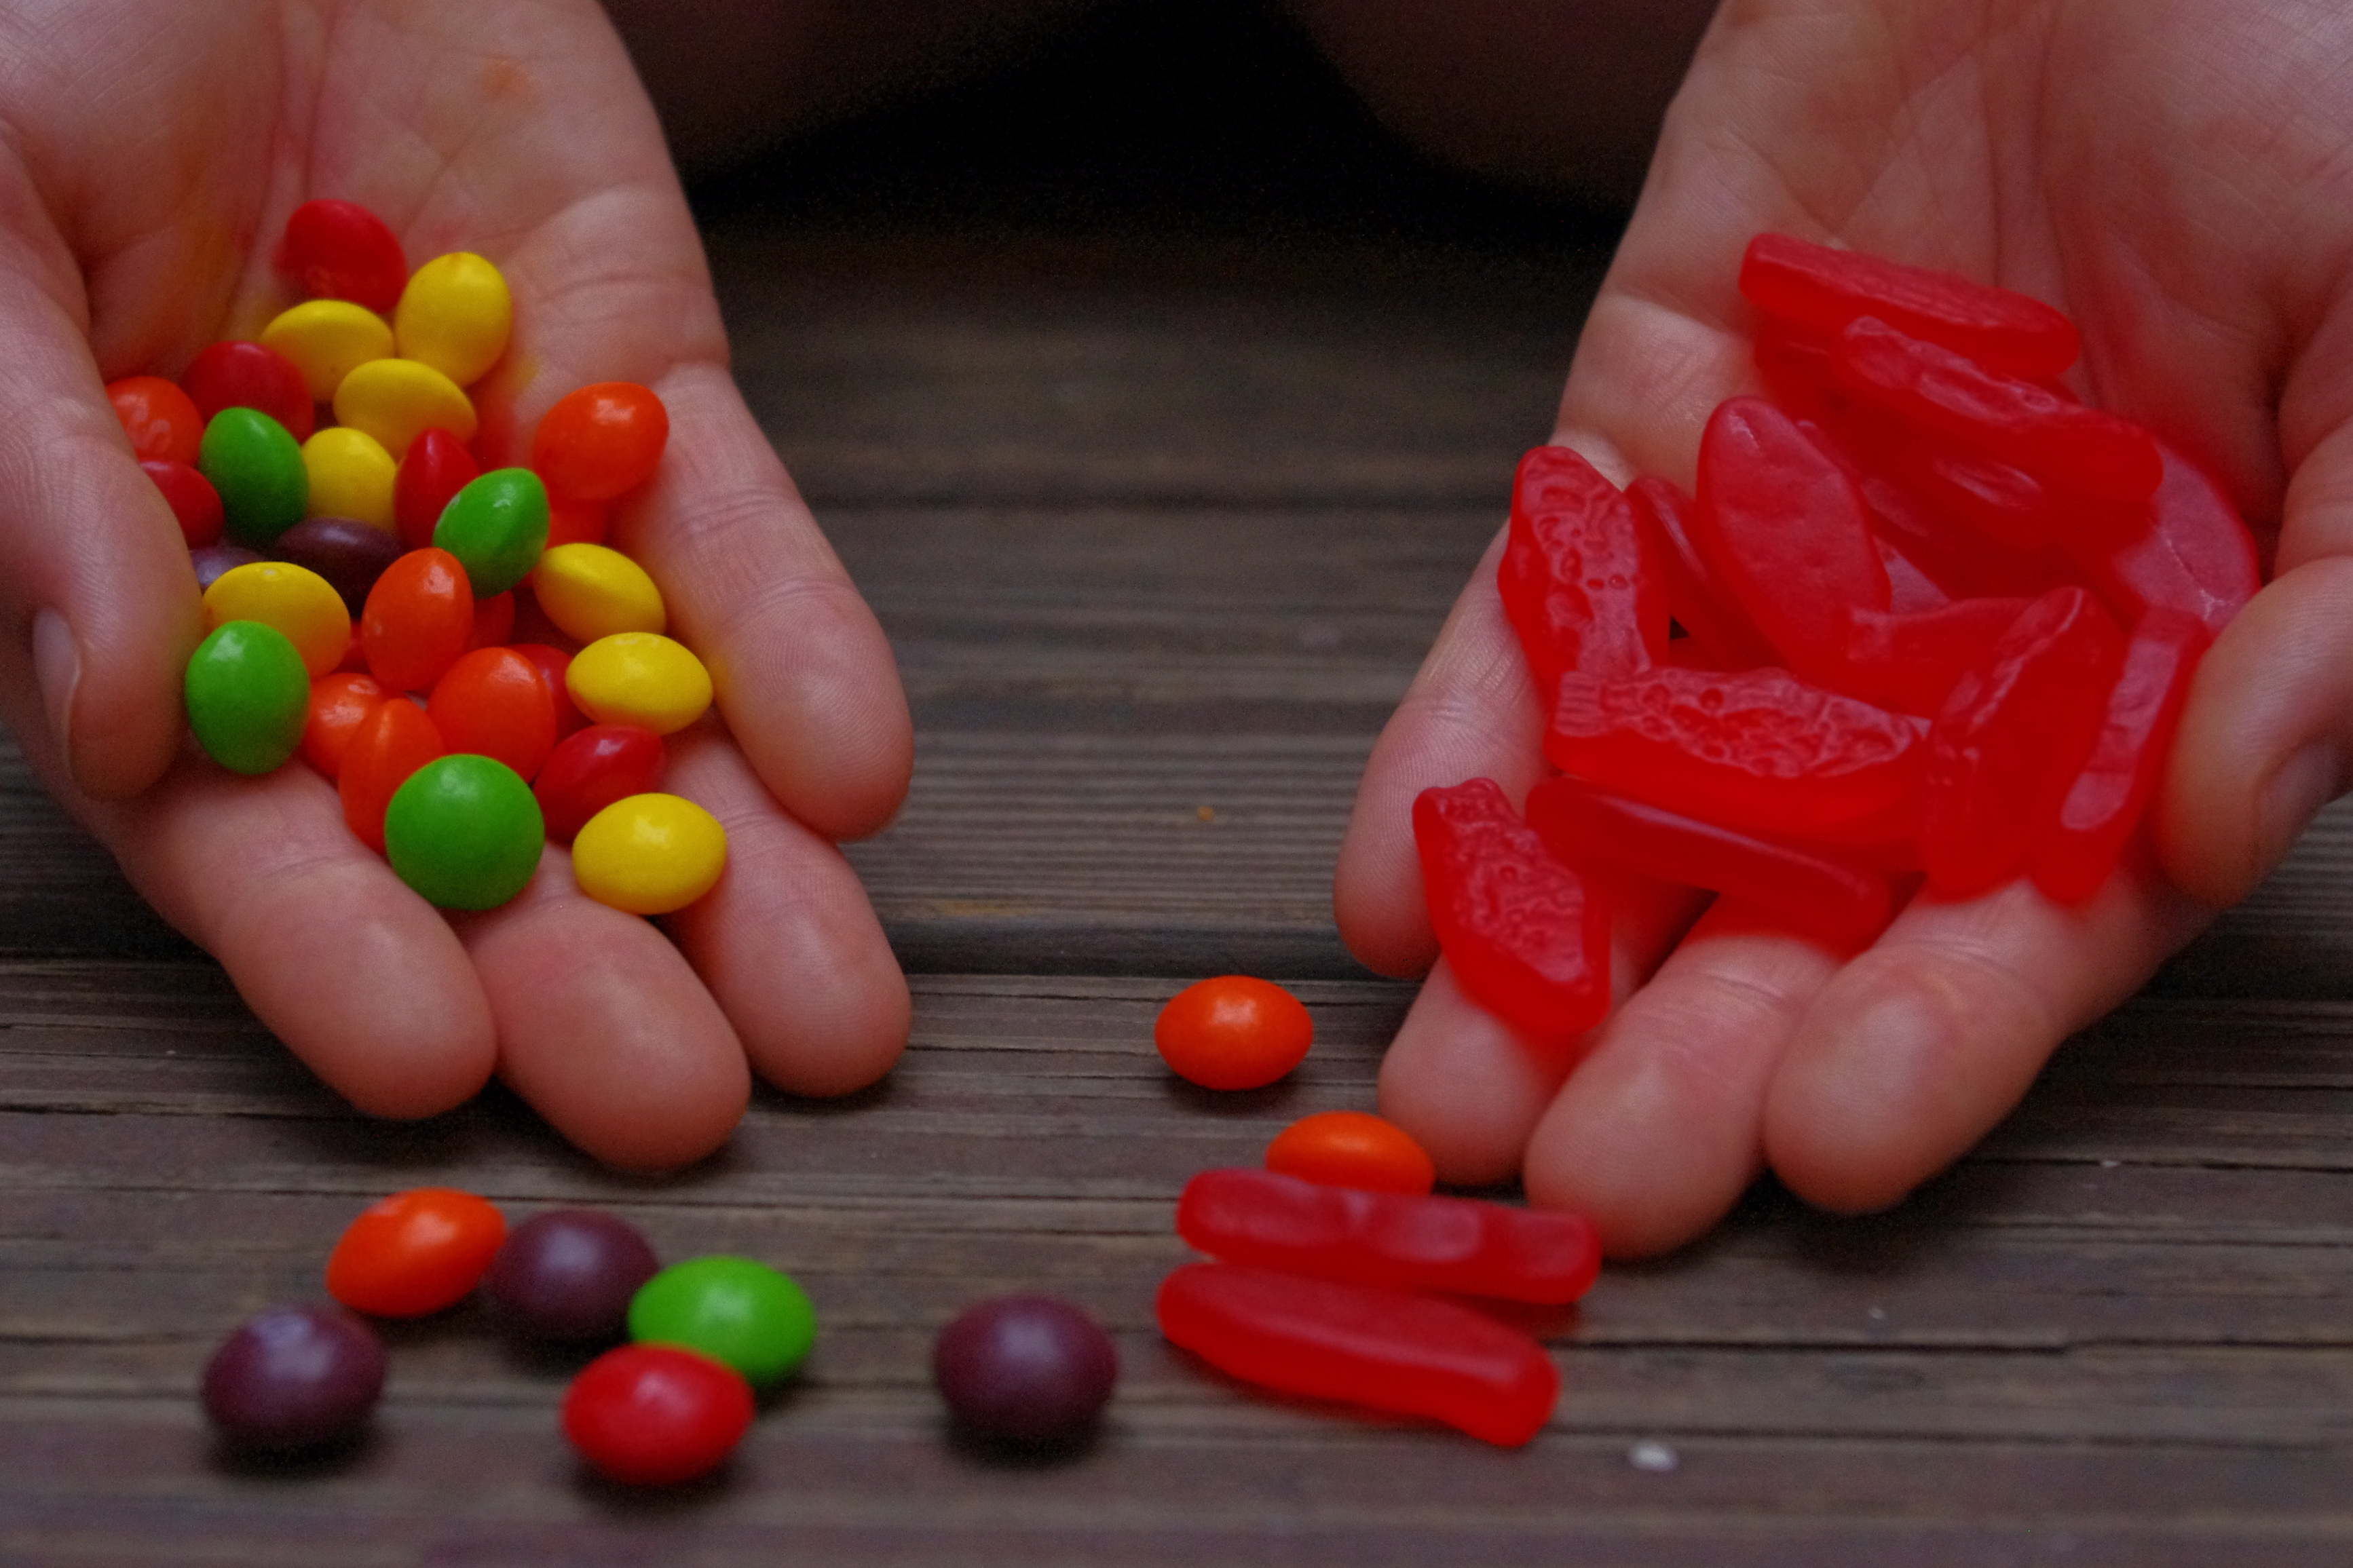 accidentally vegan skittles and swedish fish are vegan